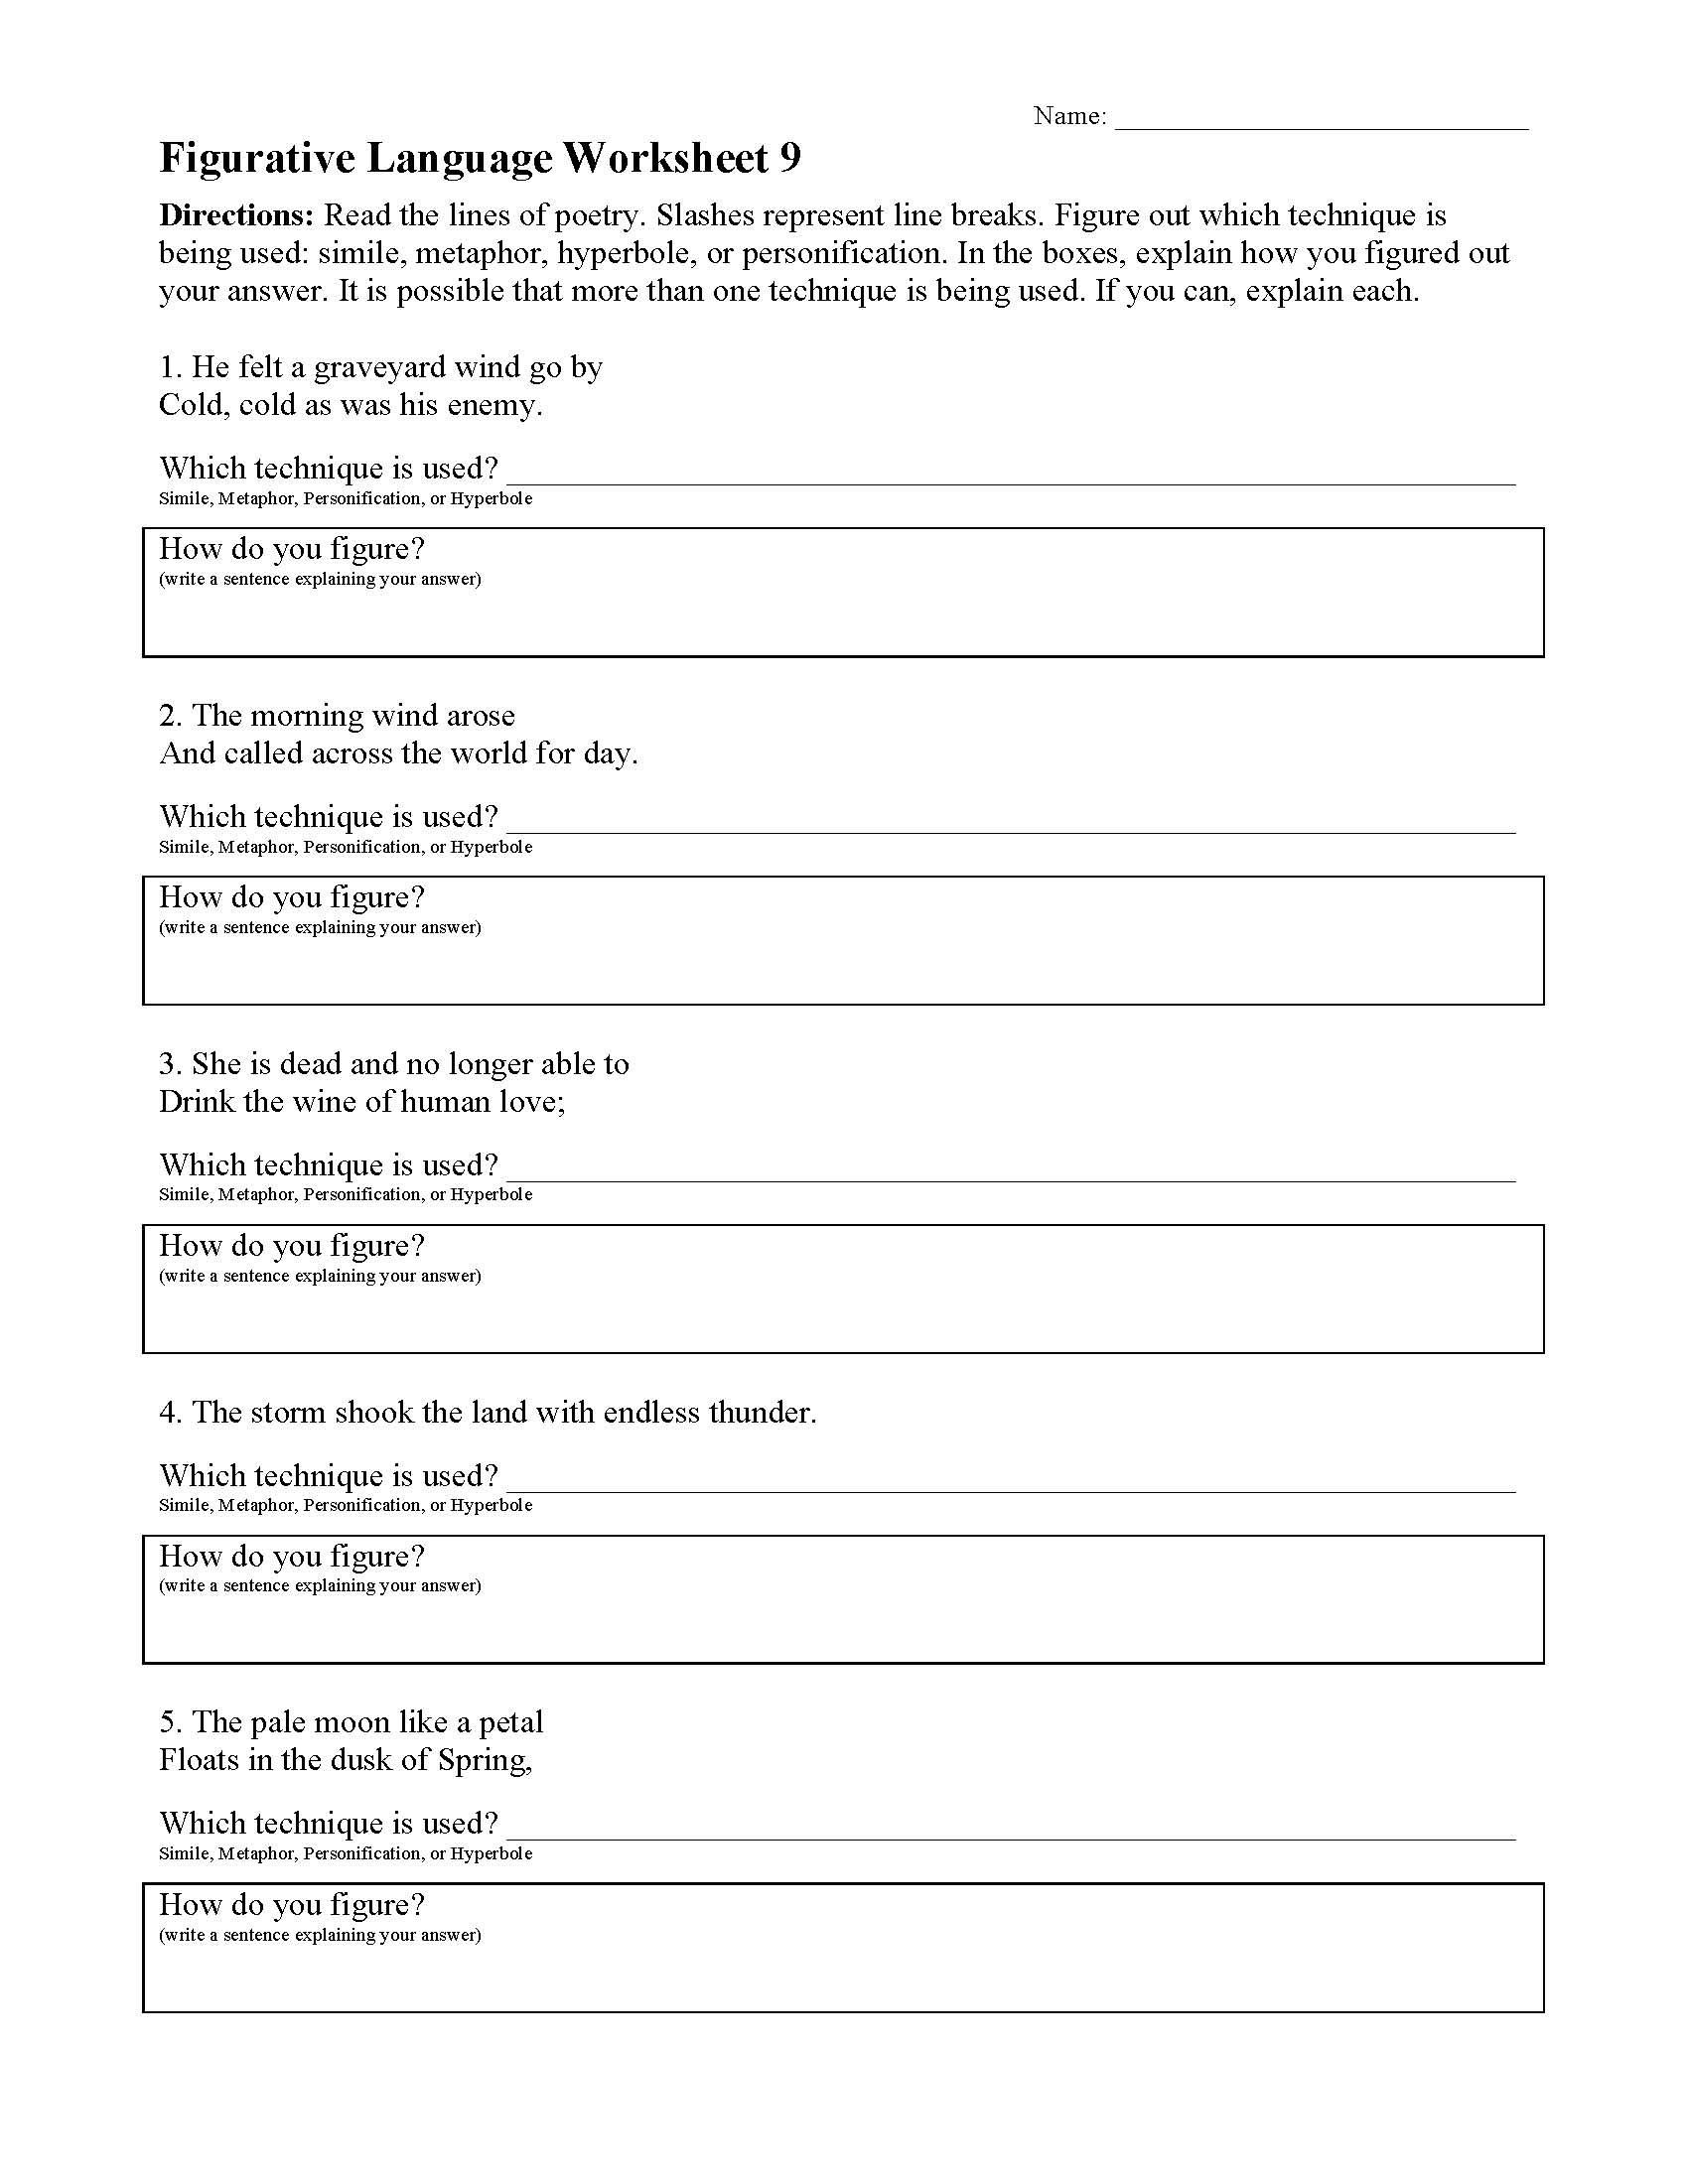 Personification Worksheets for Middle School Figurative Language Worksheets